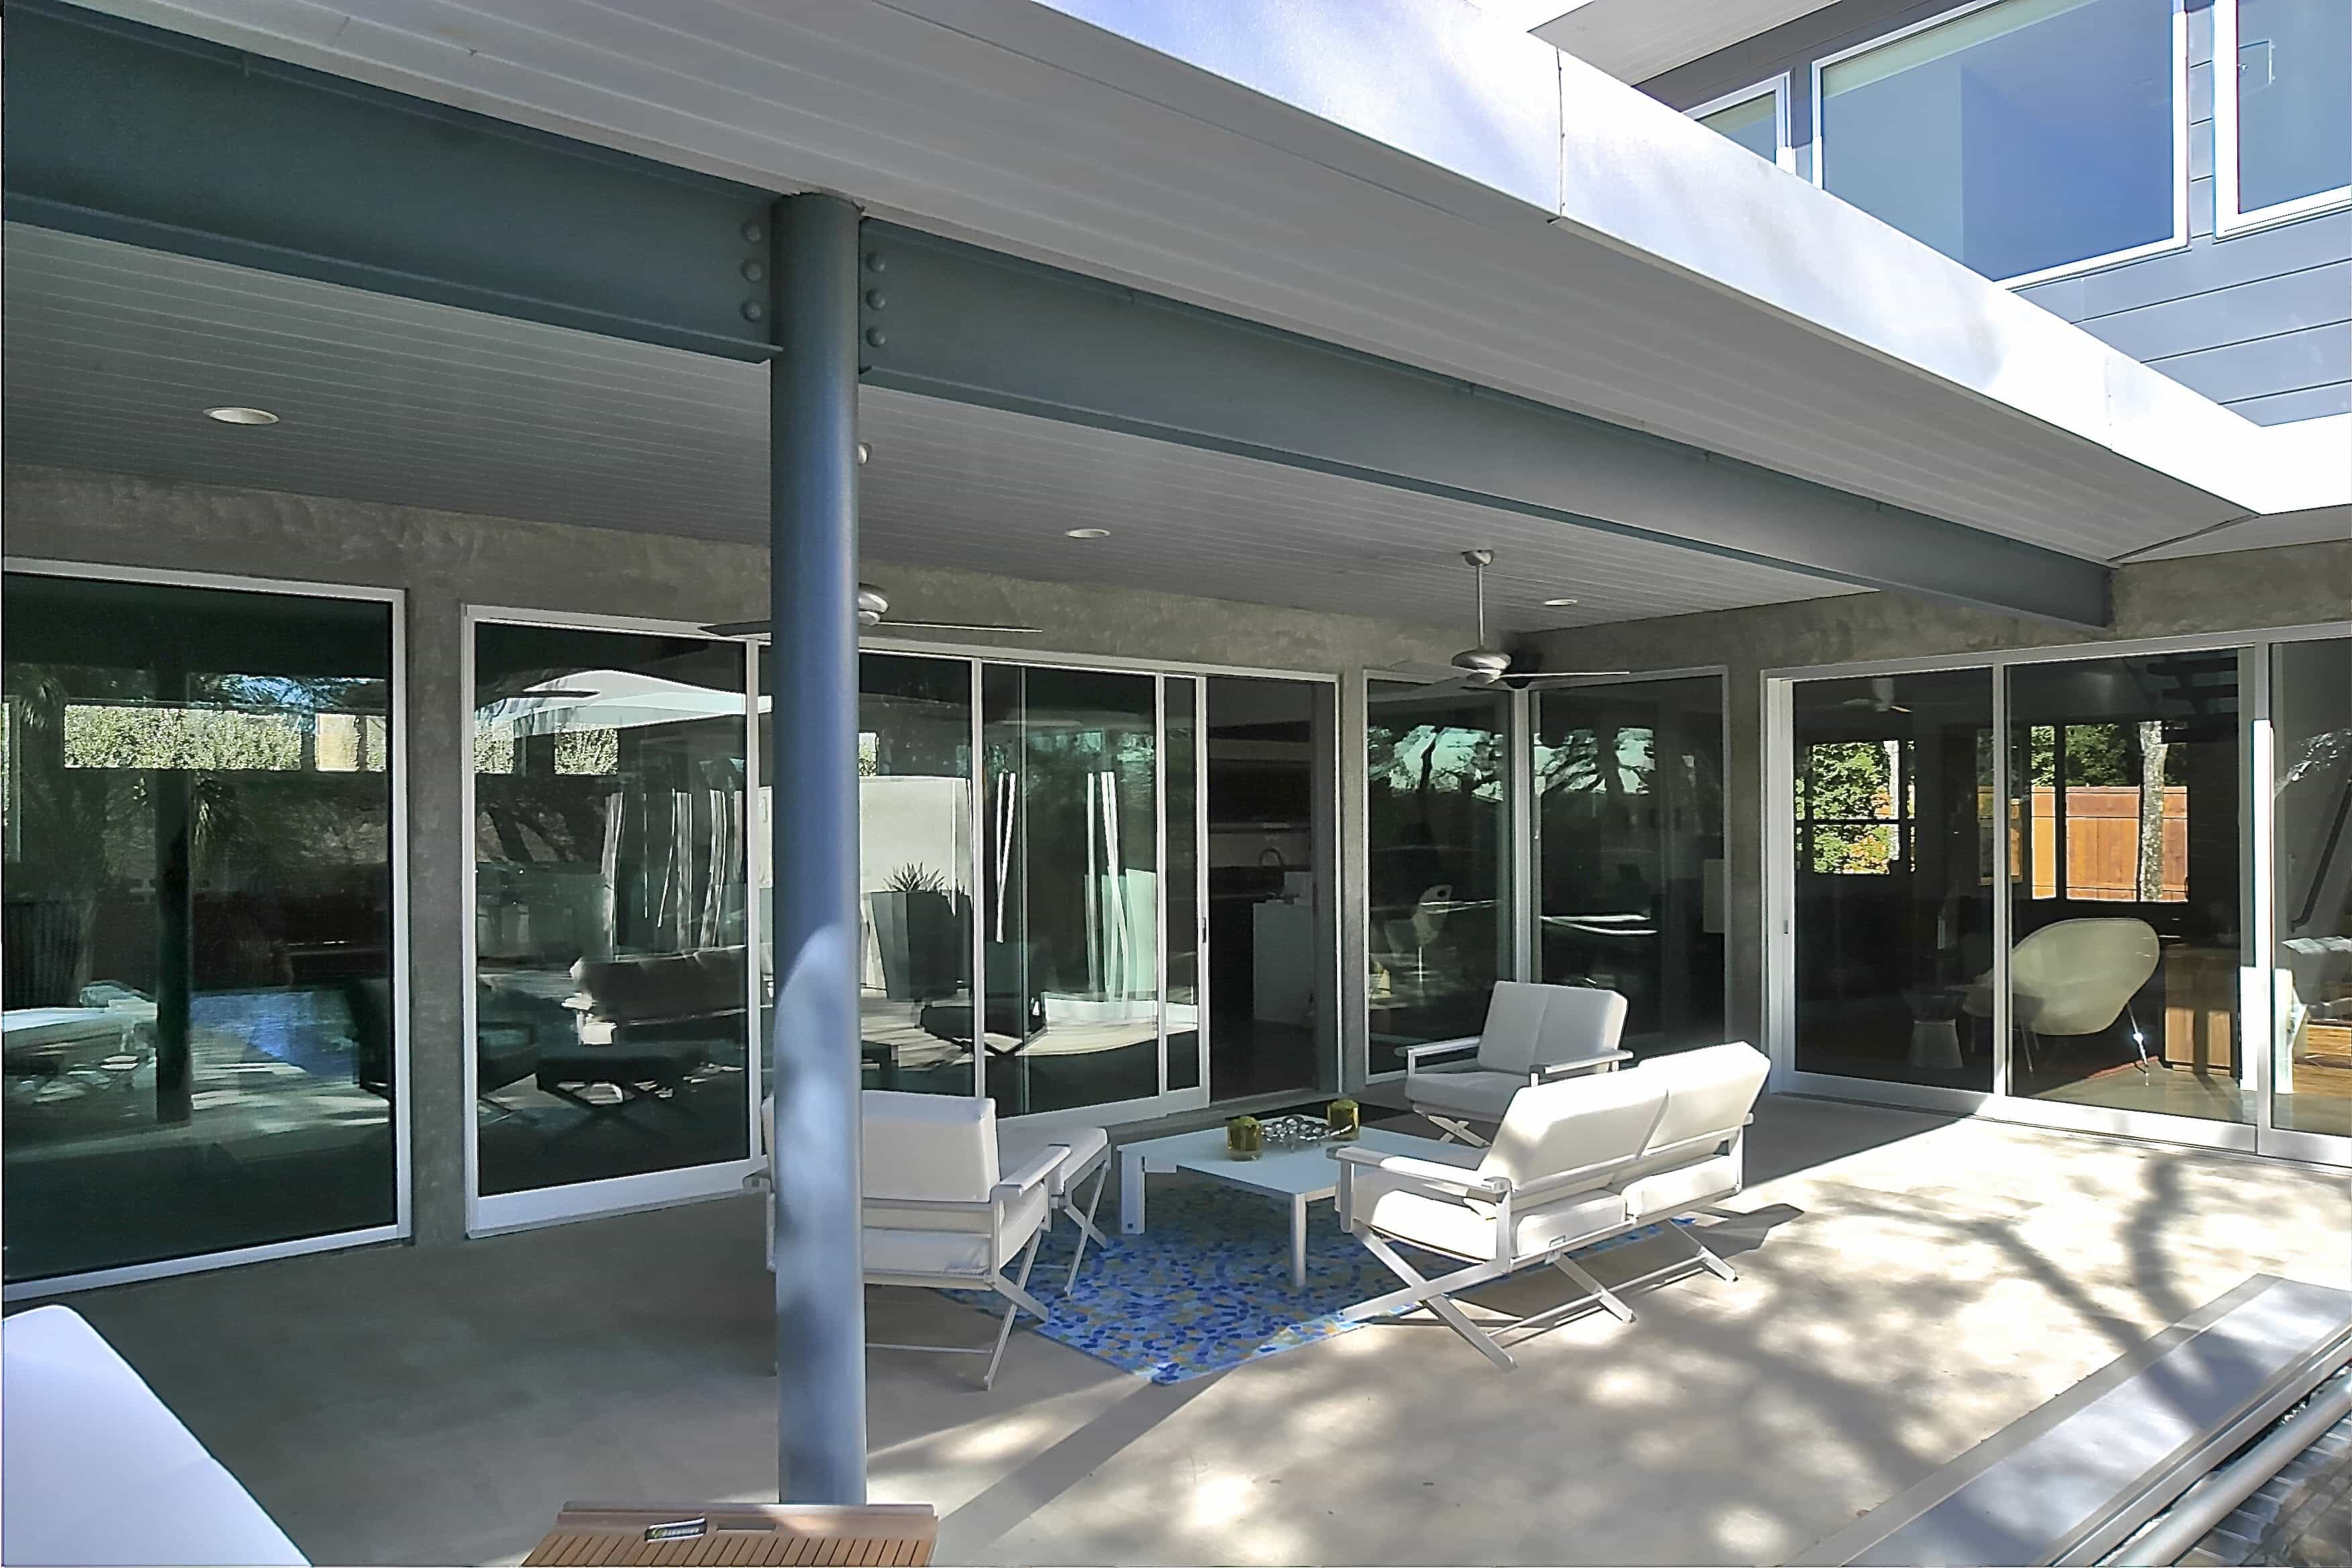 Modern Covered Patio Sliding Glass Doors (Image 11 of 21)